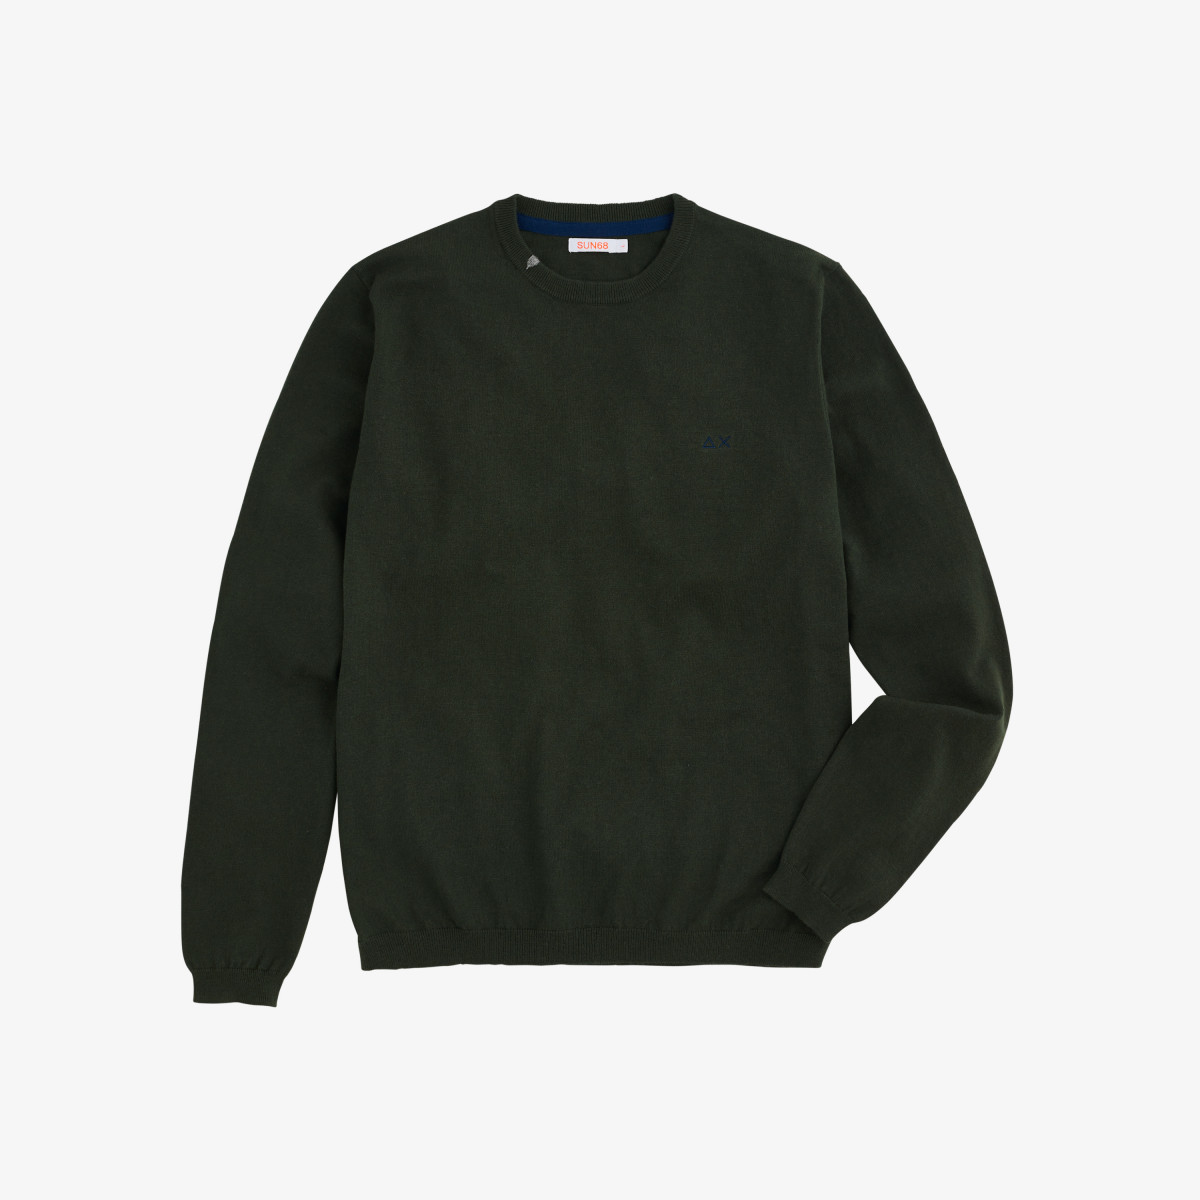 BOY'S ROUND NECK SOLID DARK GREEN